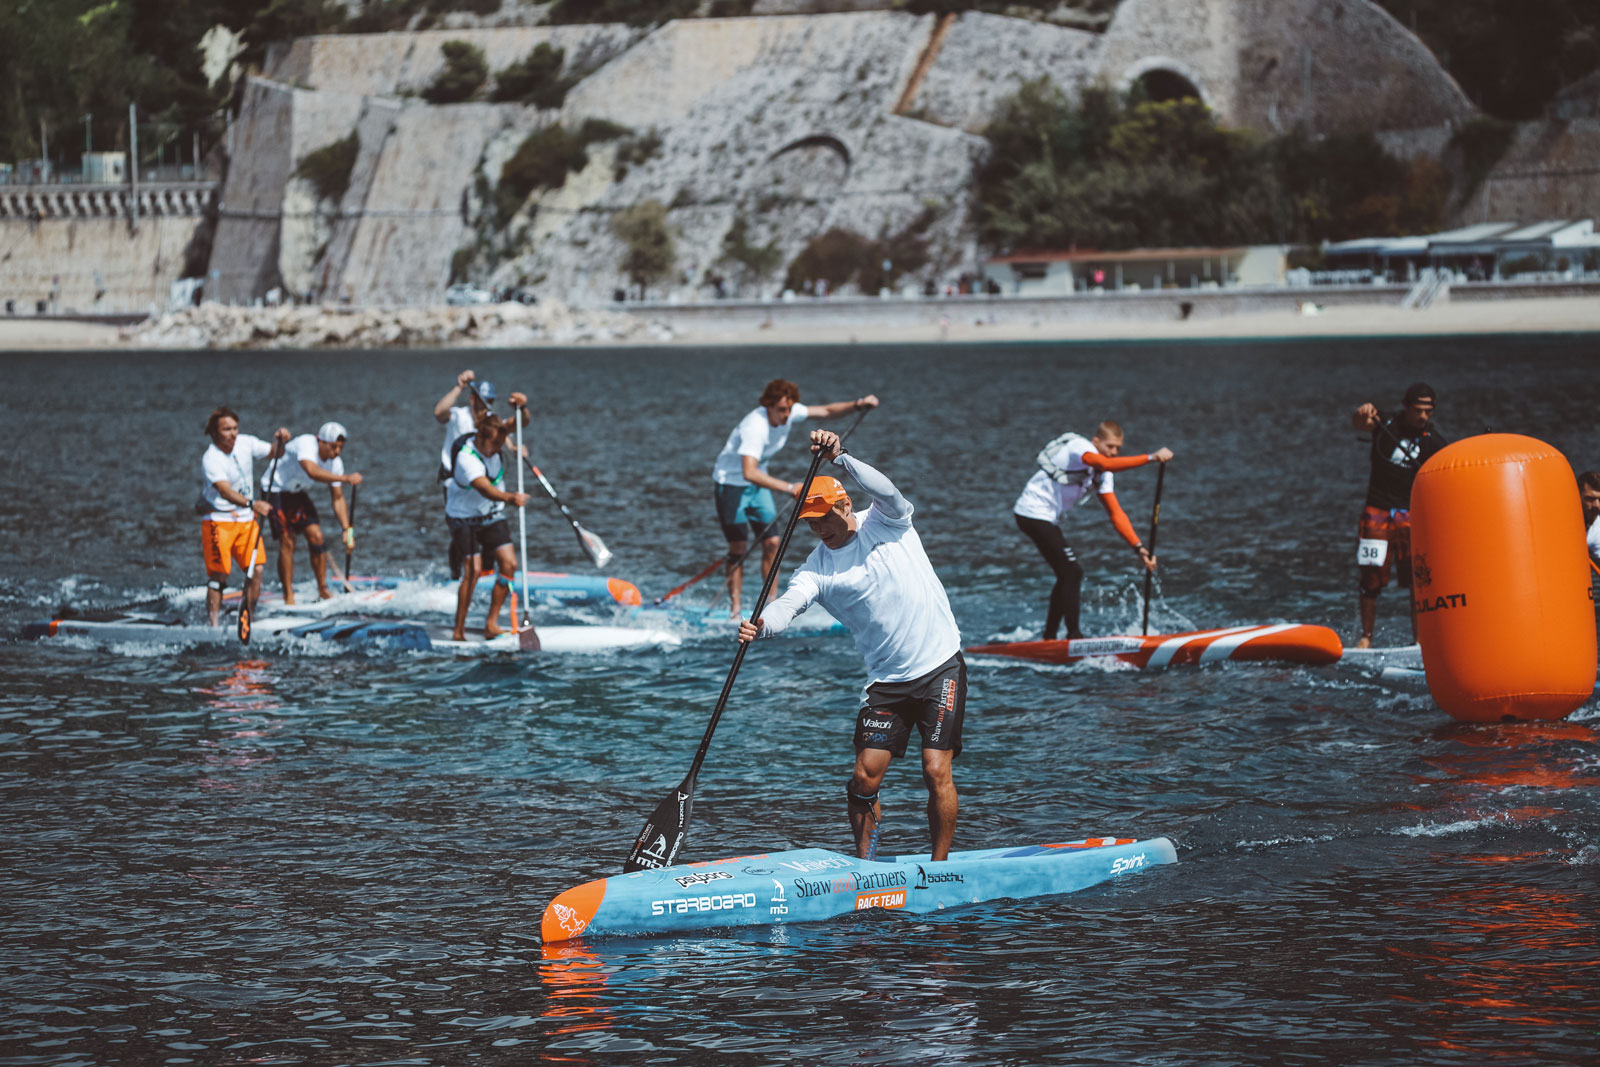 Starboard-SUP-Stand-Up-Paddleboarding-Michael-Booth-Fiona-Wylde-Win-2019-Azur-Paddle-Days-Race-Event-France-pack-buoy-turn-2